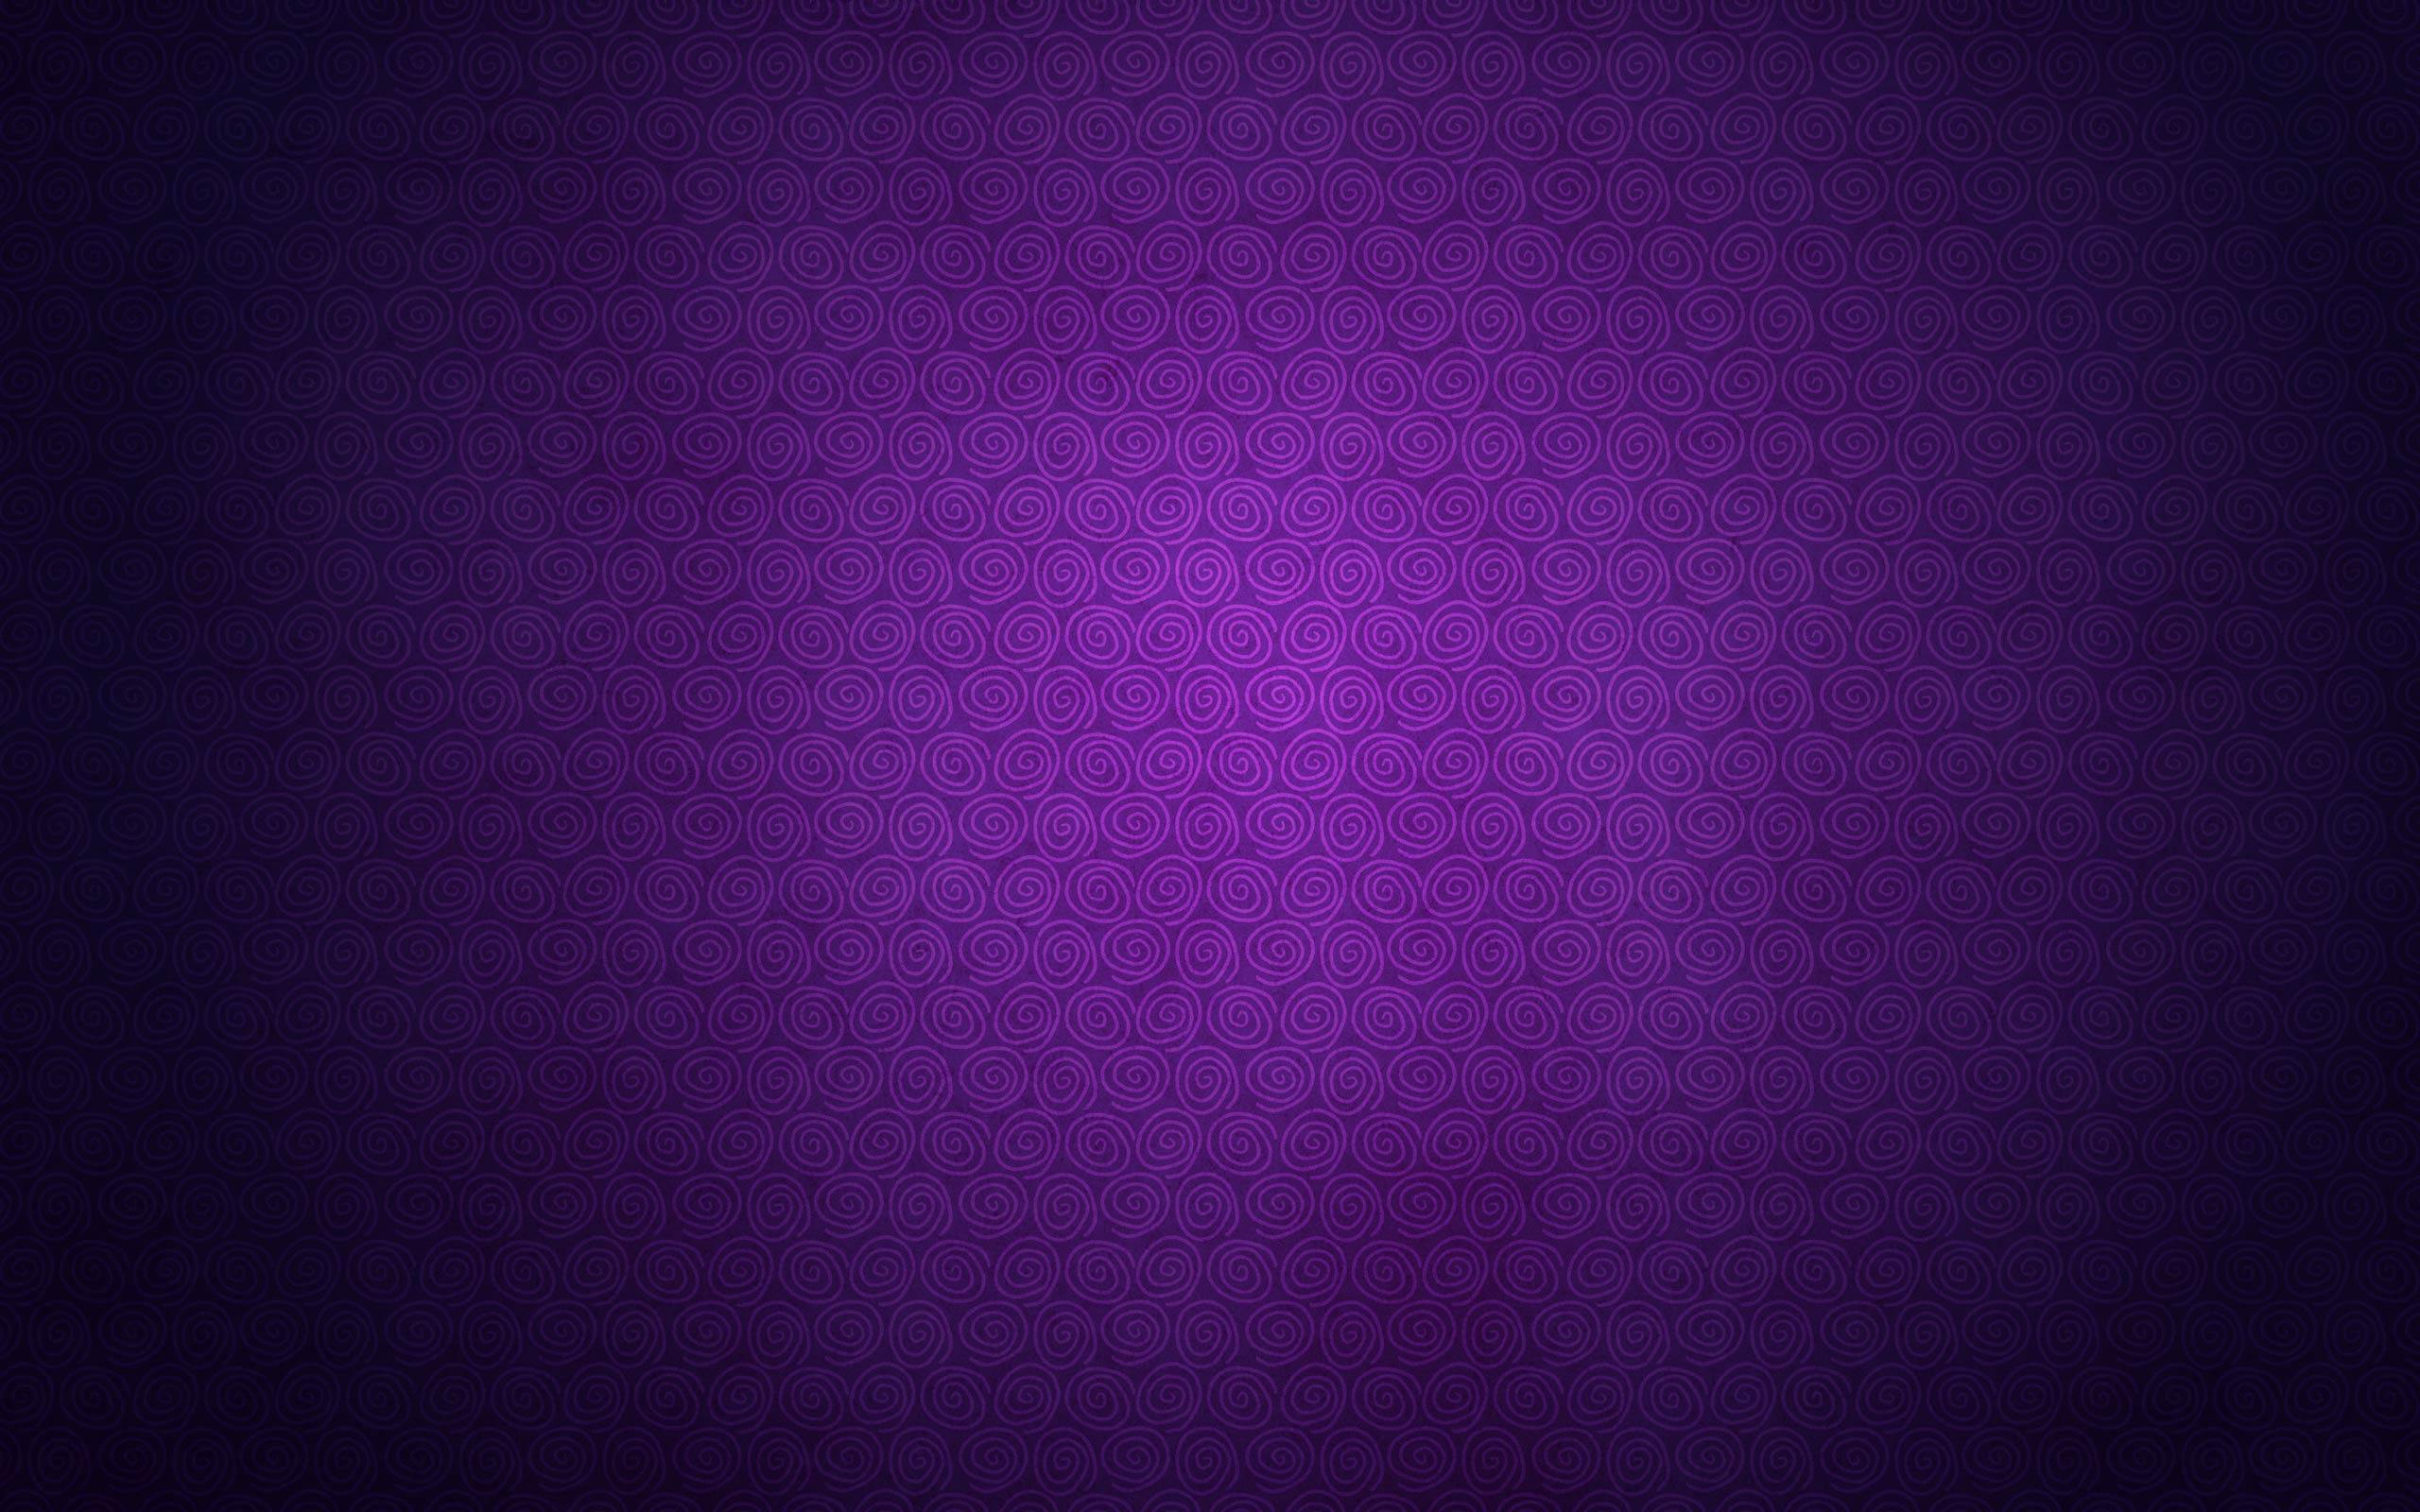 Light Purple Pattern Wallpapers Backgrounds 11928 Full HD